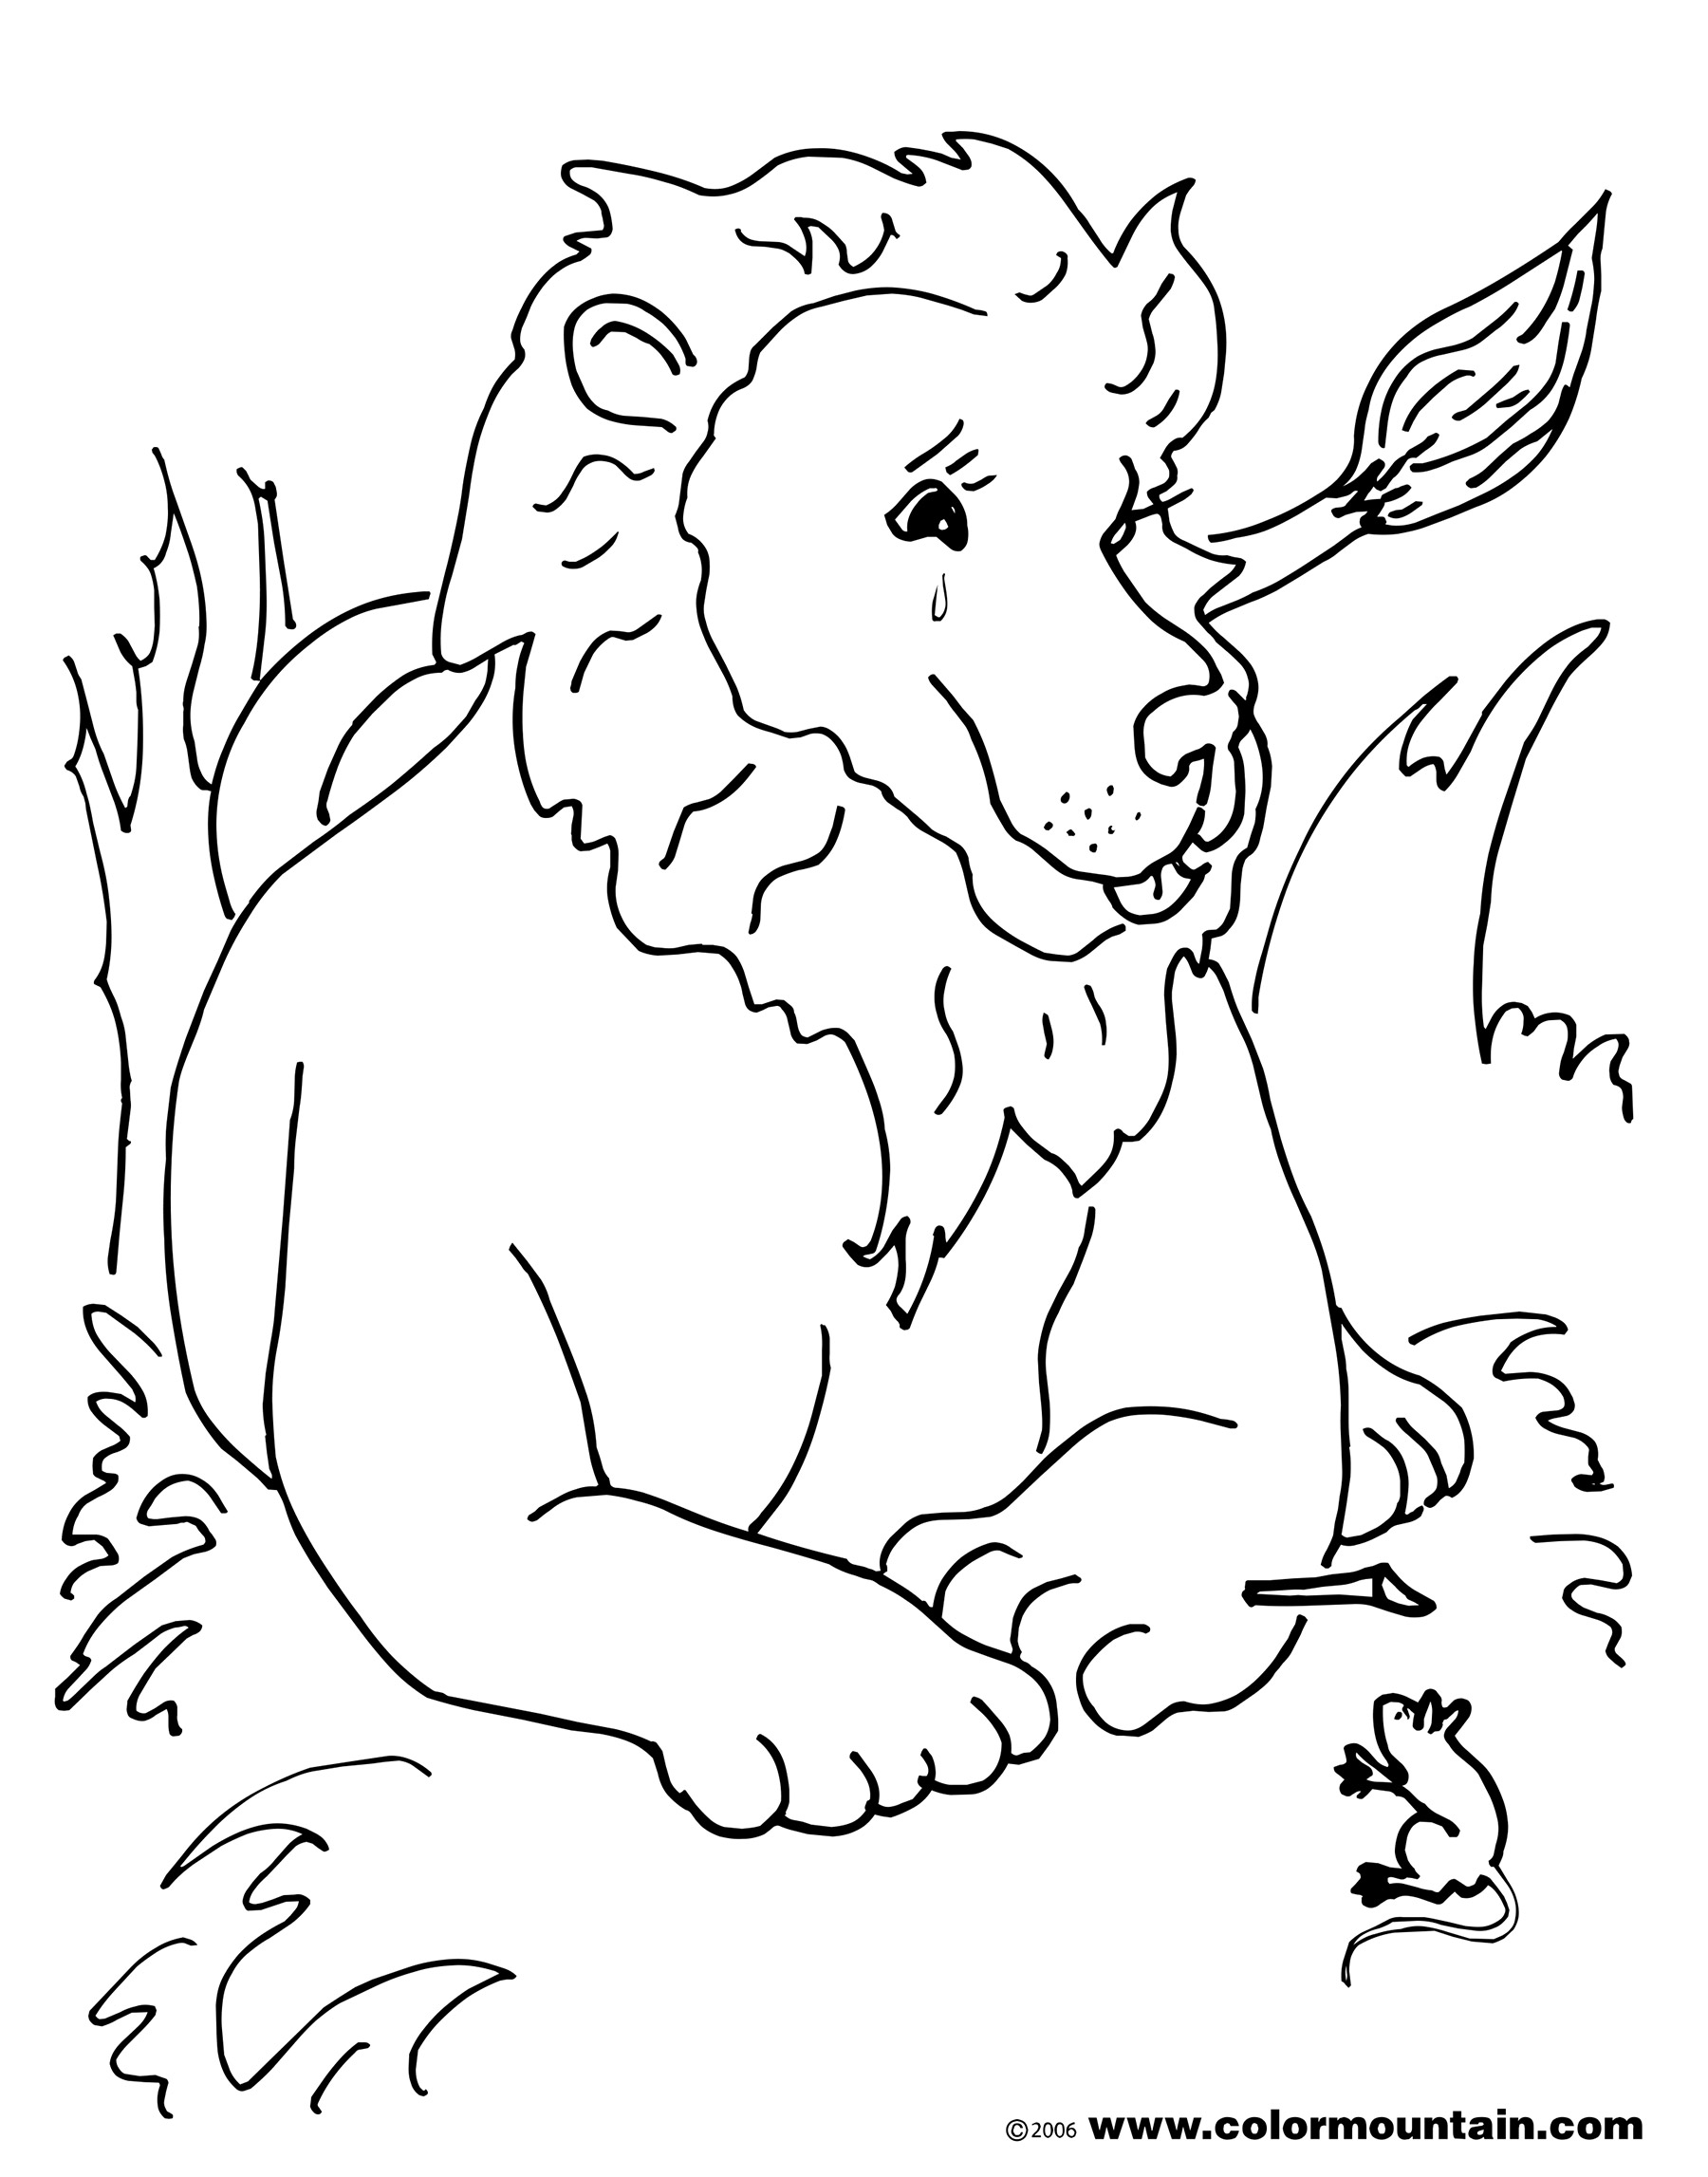 The Lion And The Mouse Coloring Page At Getcolorings